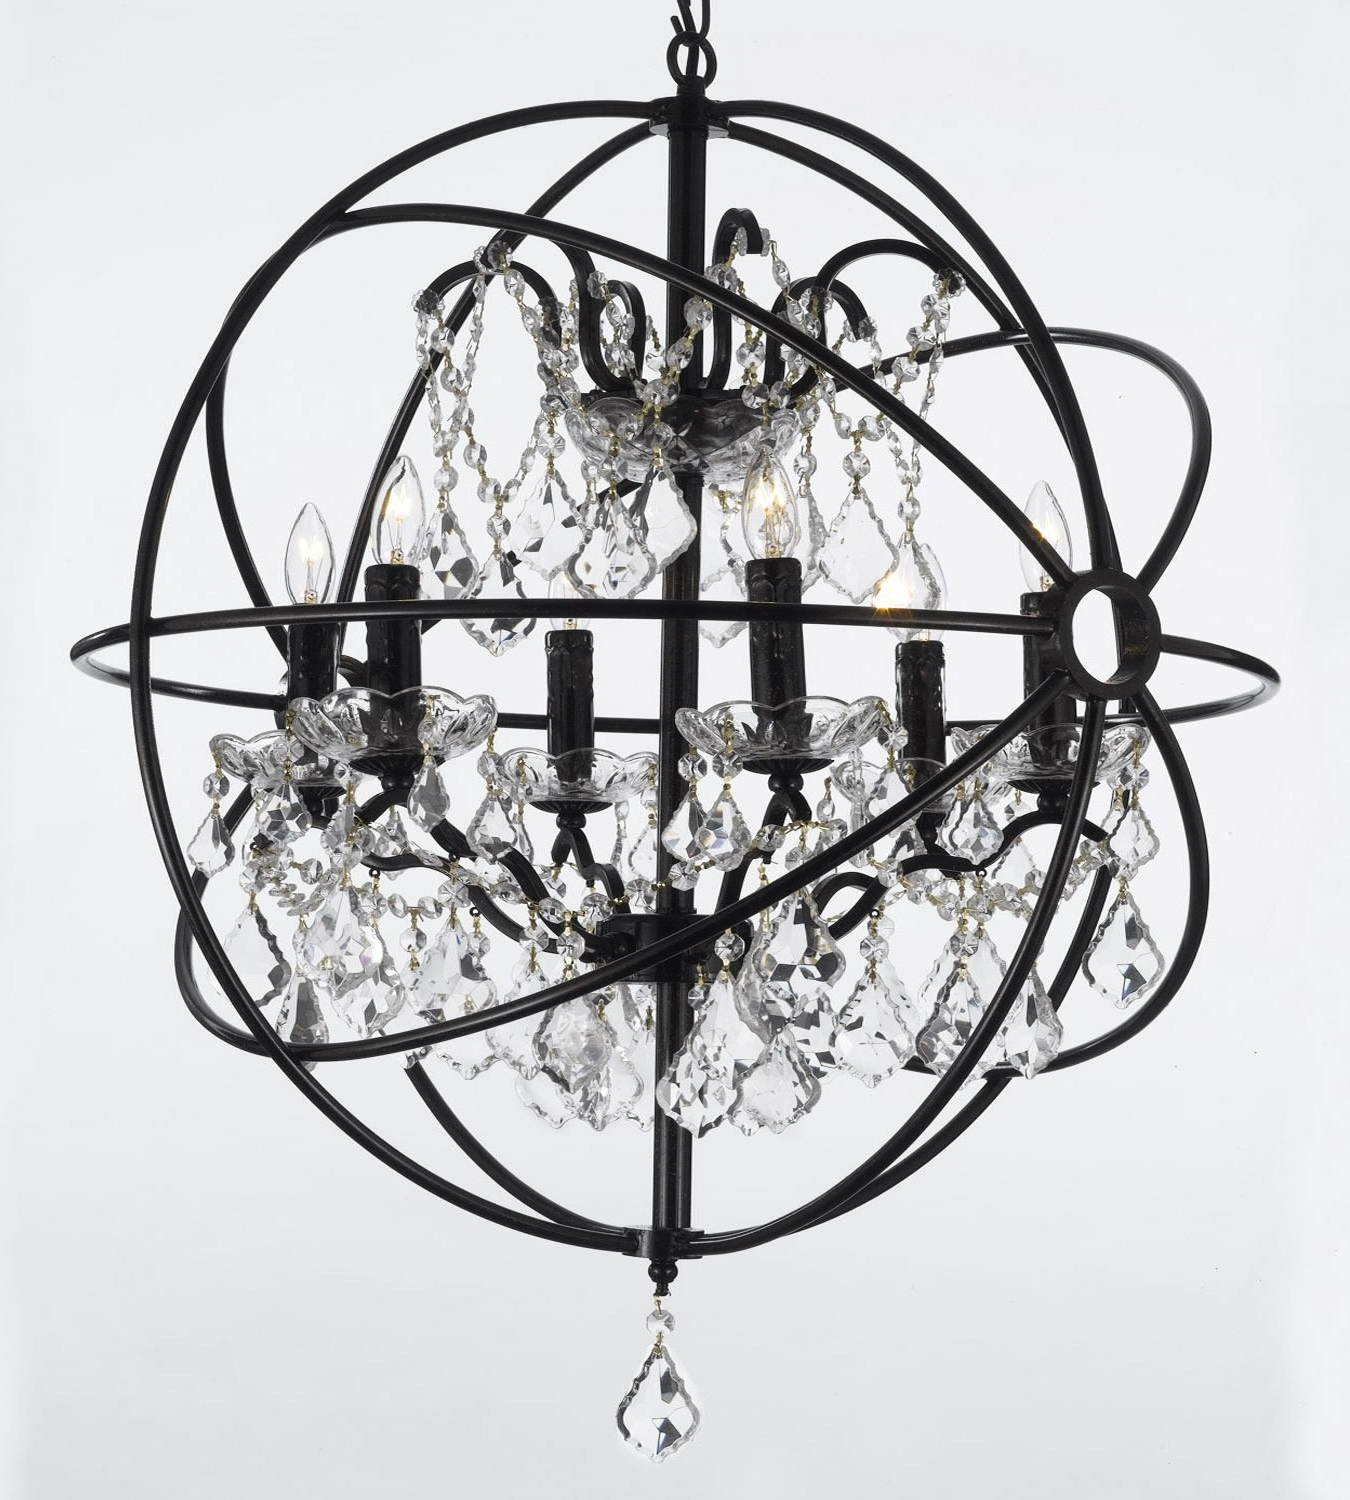 2020 Calderdale Orb 6 Light Globe Chandelier Pertaining To Gregoire 6 Light Globe Chandeliers (View 1 of 20)